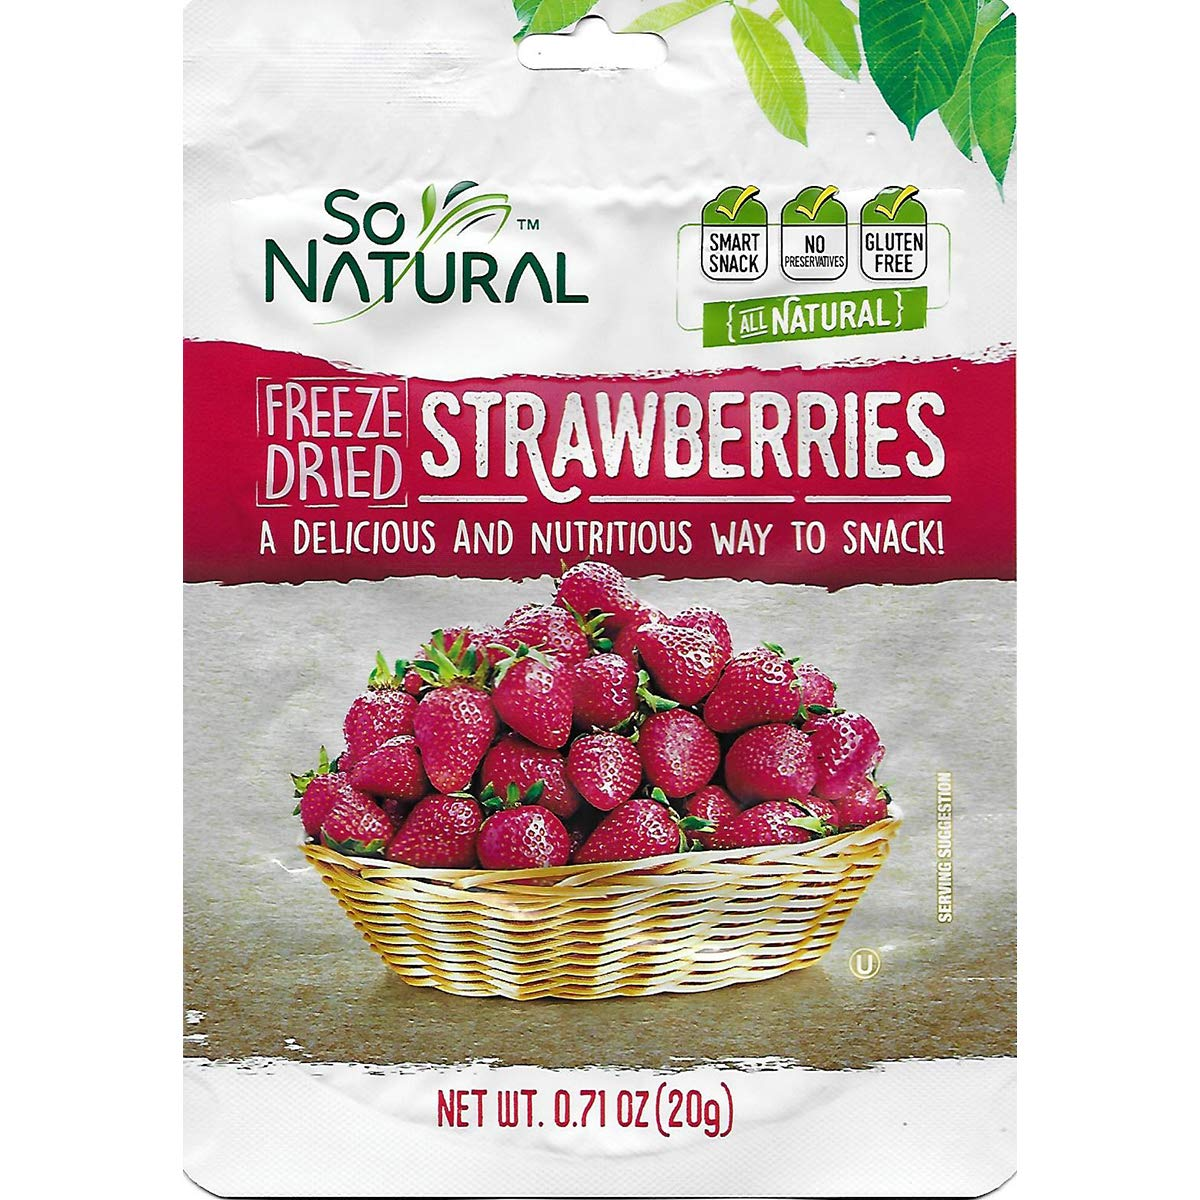 So Natural Freeze Dried Strawberries (Strawberry, 3 Pack)